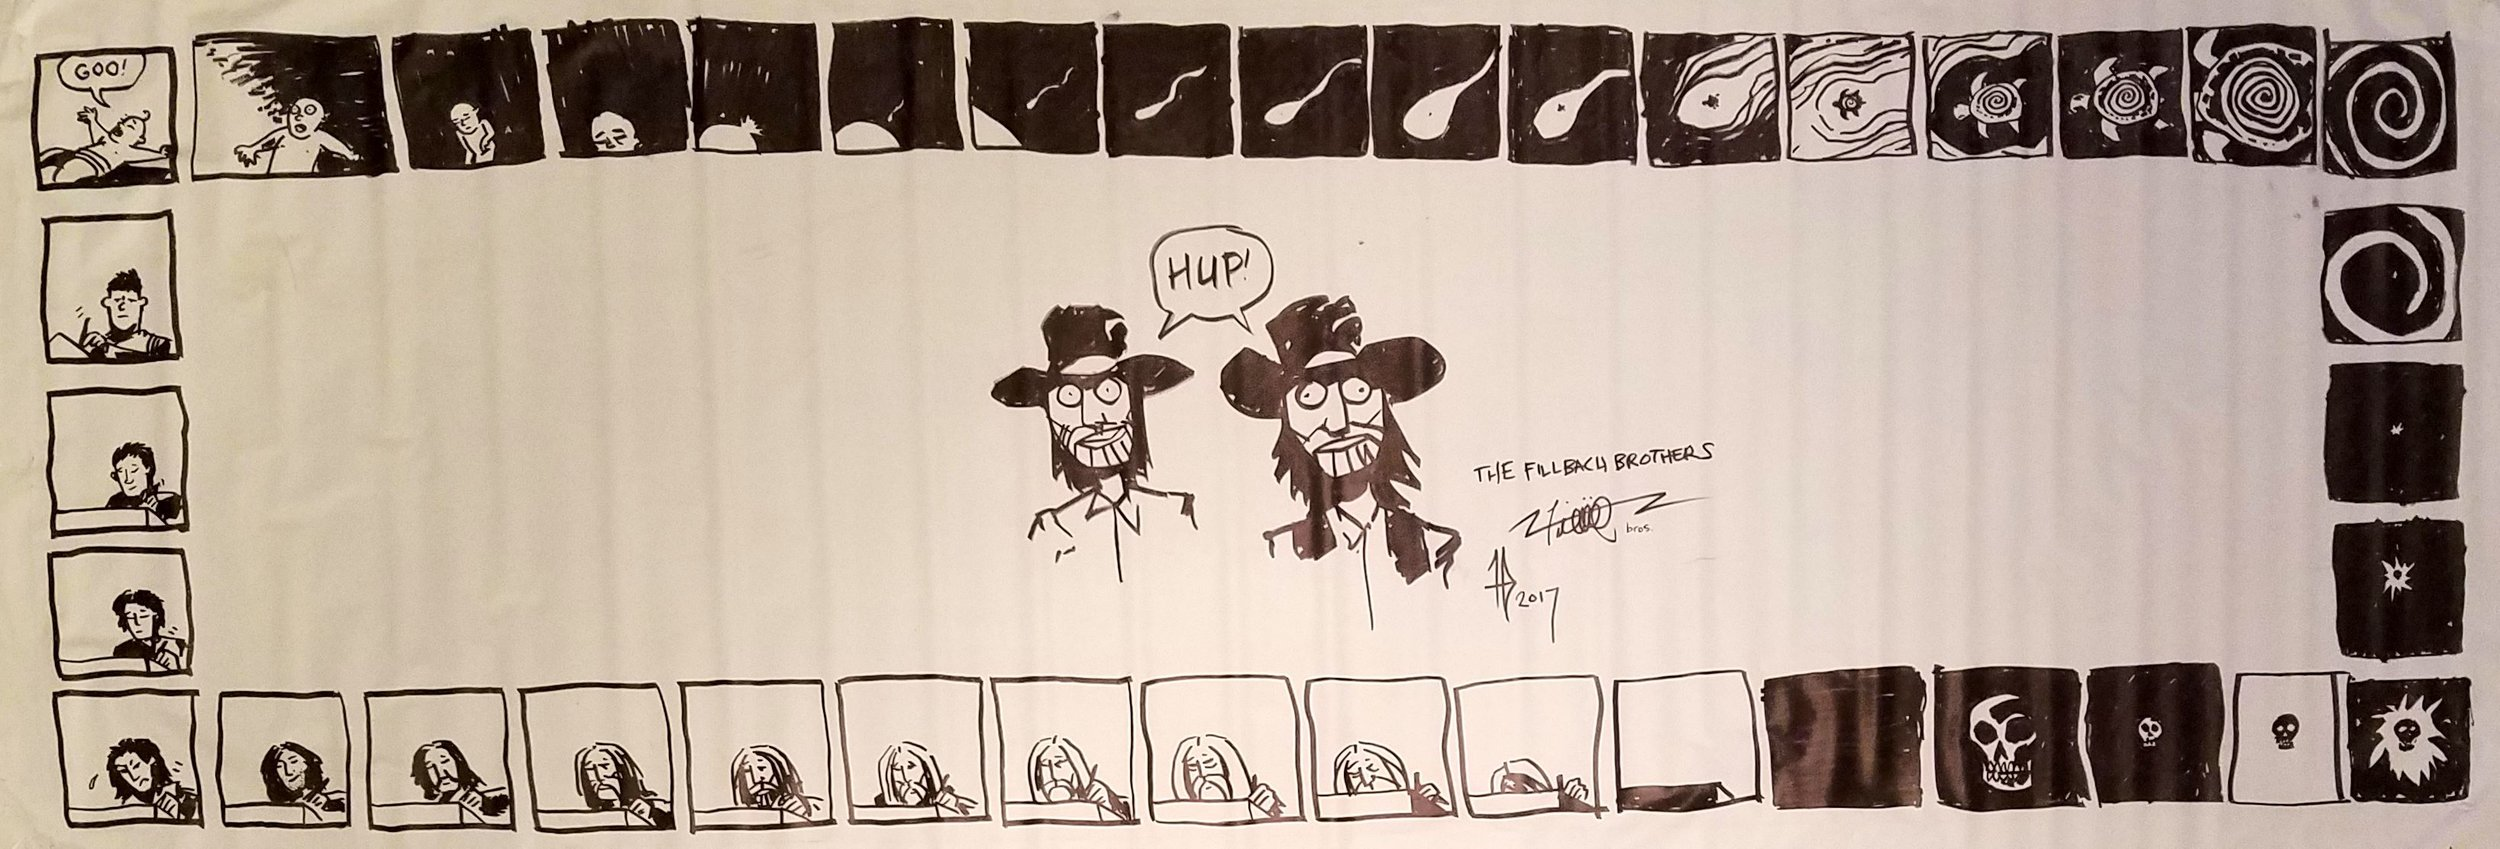 The Cycle of Life comic that the Brothers drew on their table during the convention.